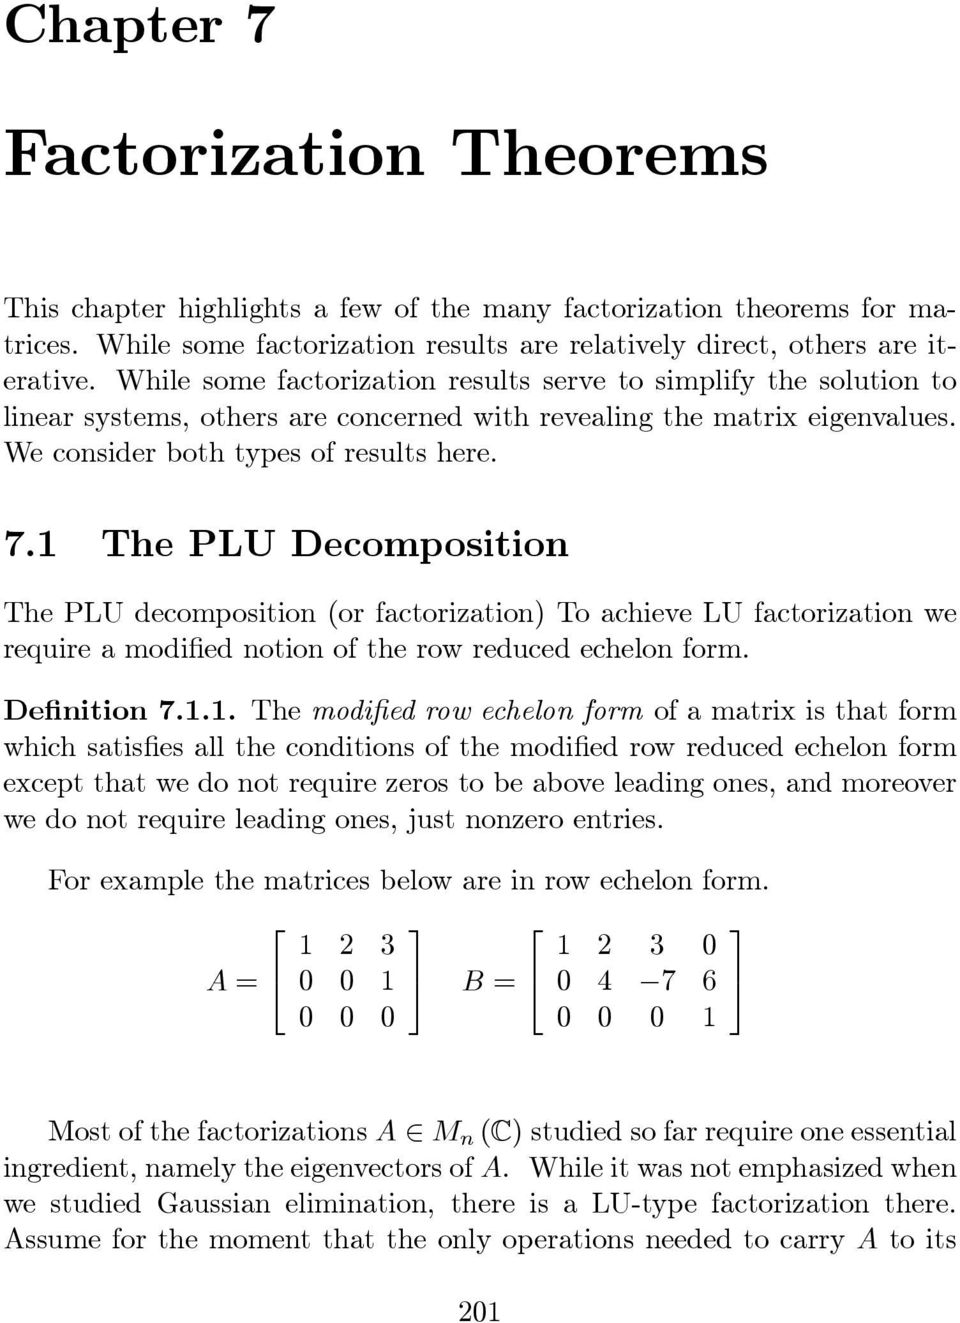 PLU decomposition (or factorization) To achieve LU factorization we require a modified notion of the row reduced echelon form Definition 7 The modified row echelon form of a matrix is that form which